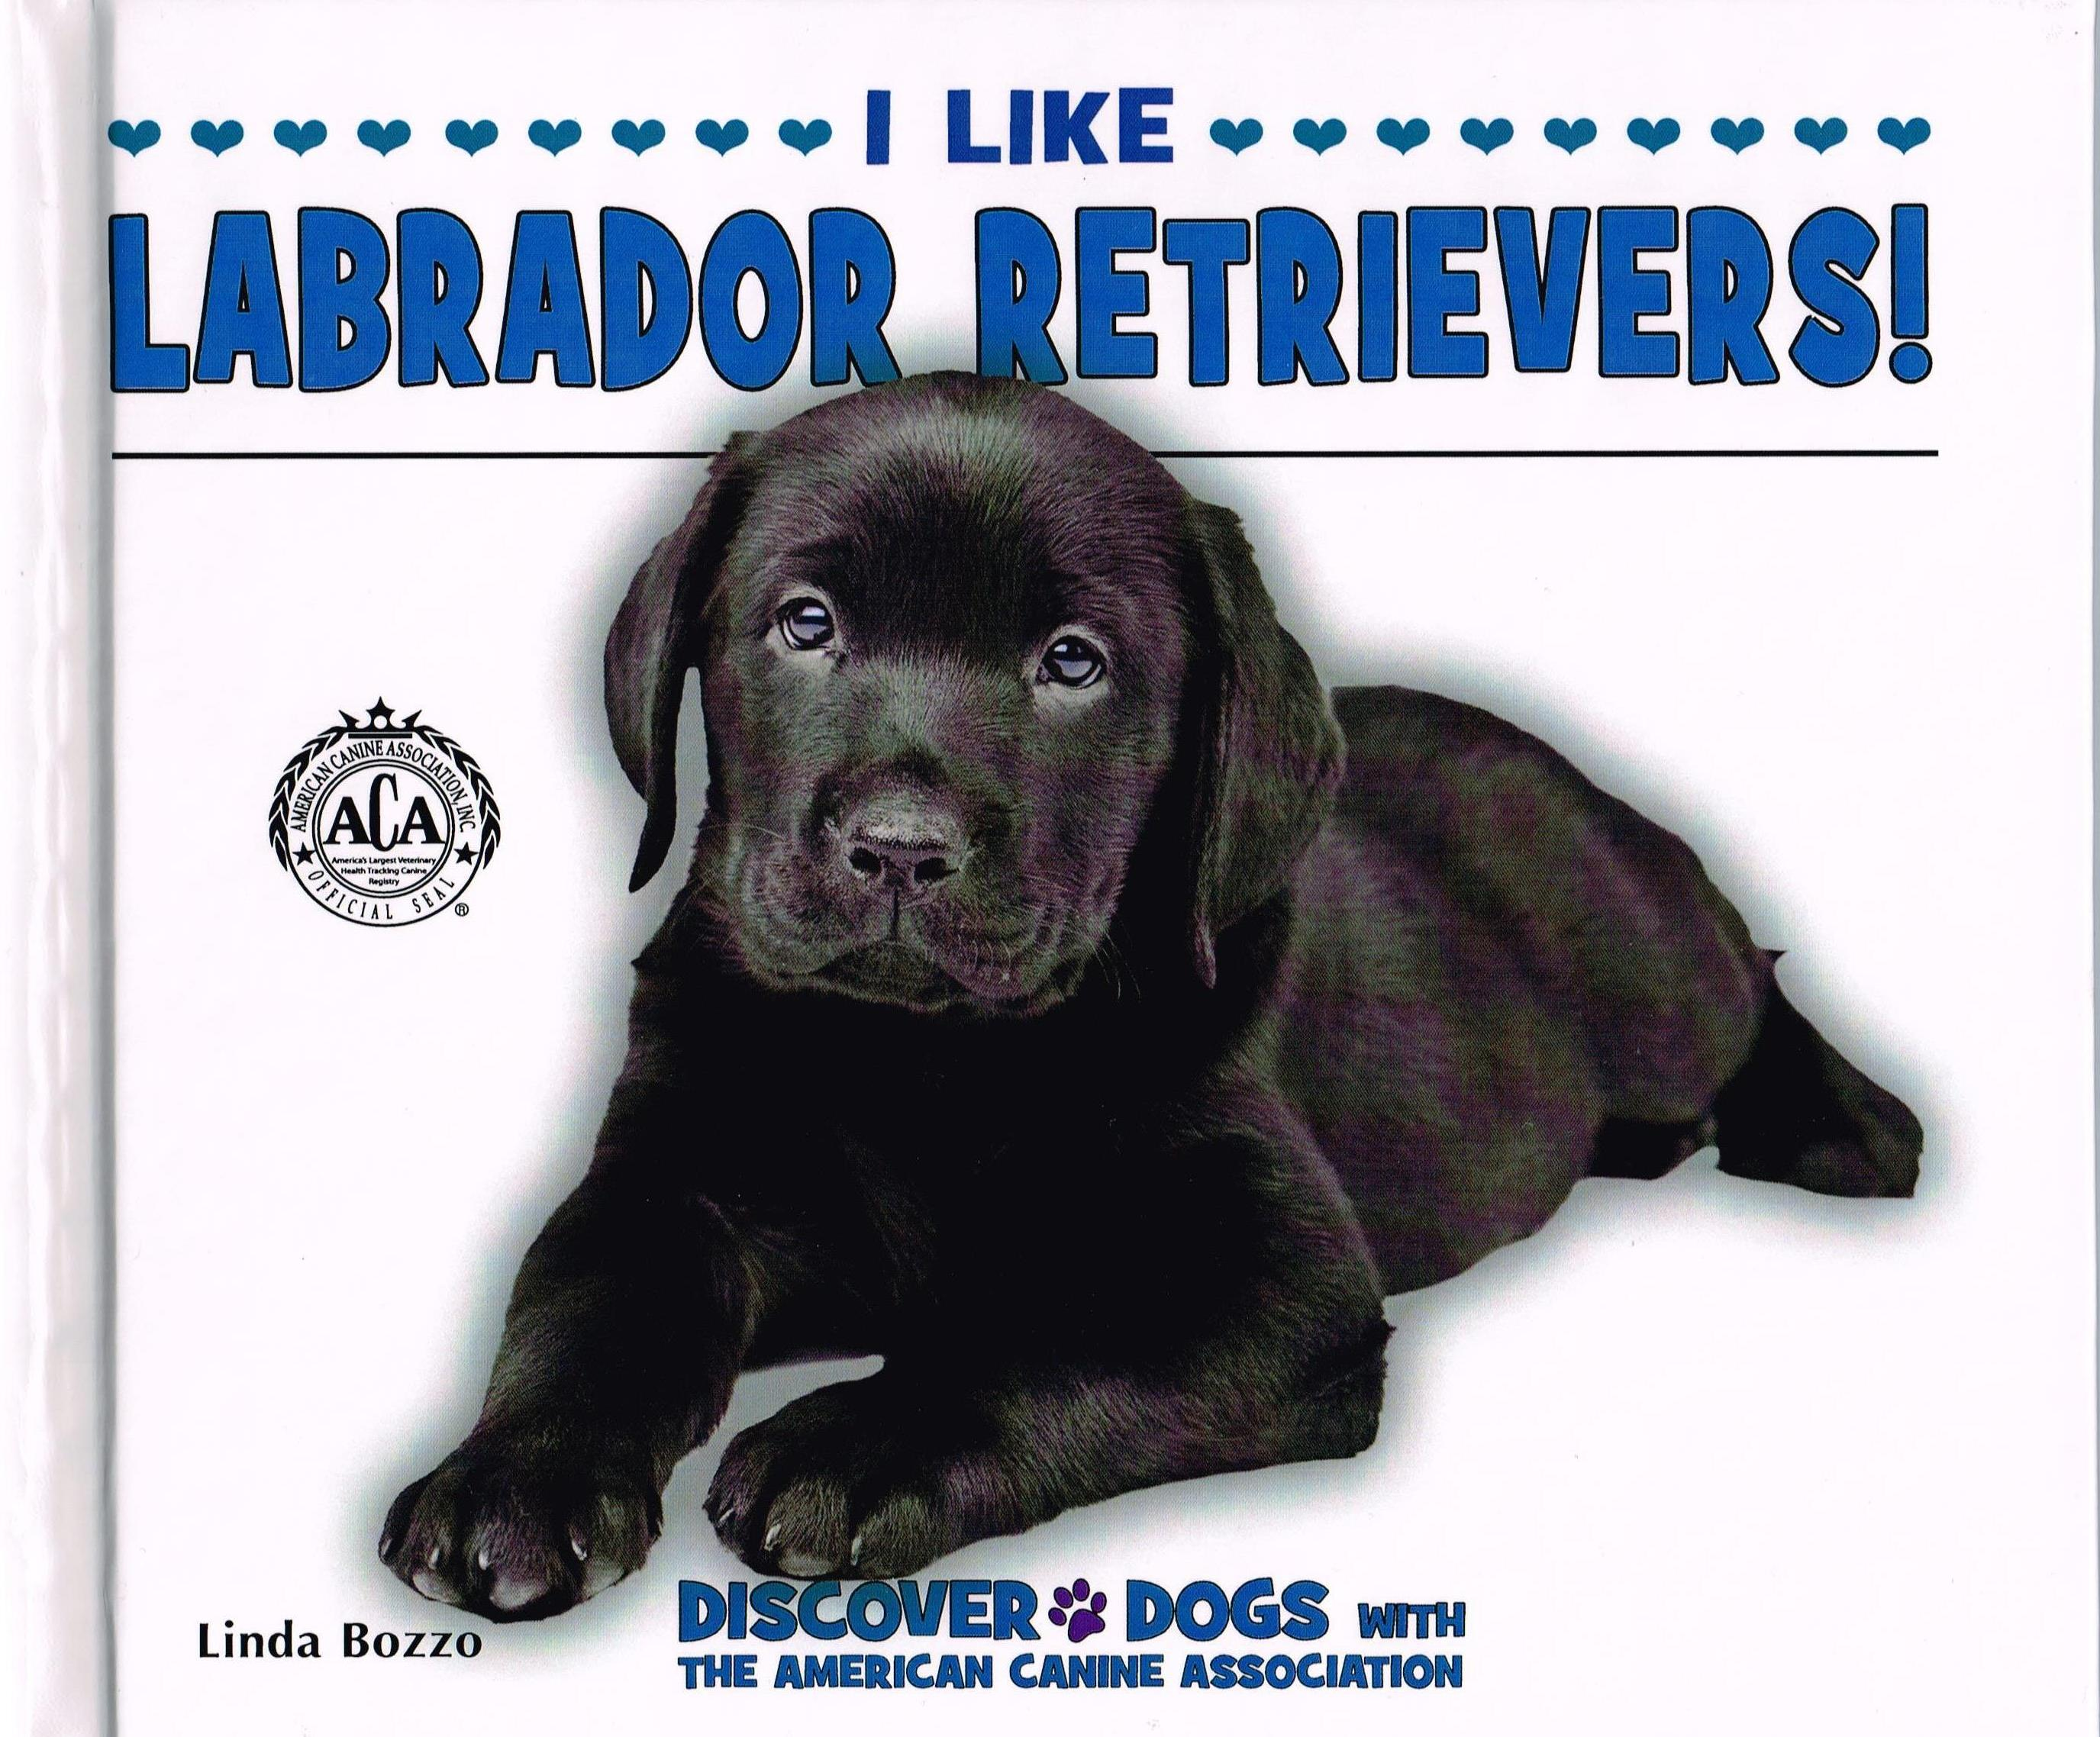 I Like Labrador Retrievers!